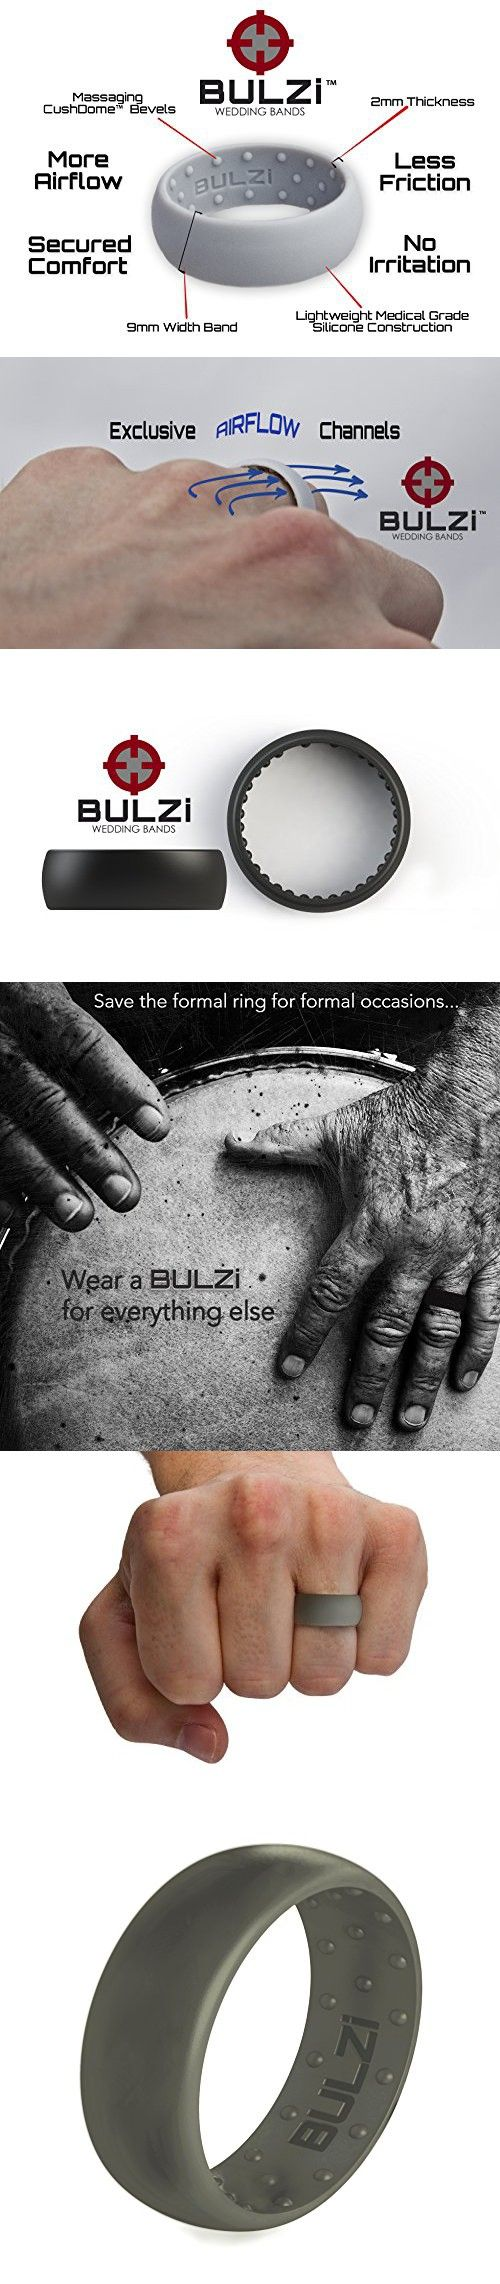 BULZi - Massaging Comfort Fit Silicone Wedding Ring - #1 Most Comfortable Men's Wedding Band - Round Edges with Flexible Work Safety 9mm Domed Design (Sage, 10 - 19.8mm)